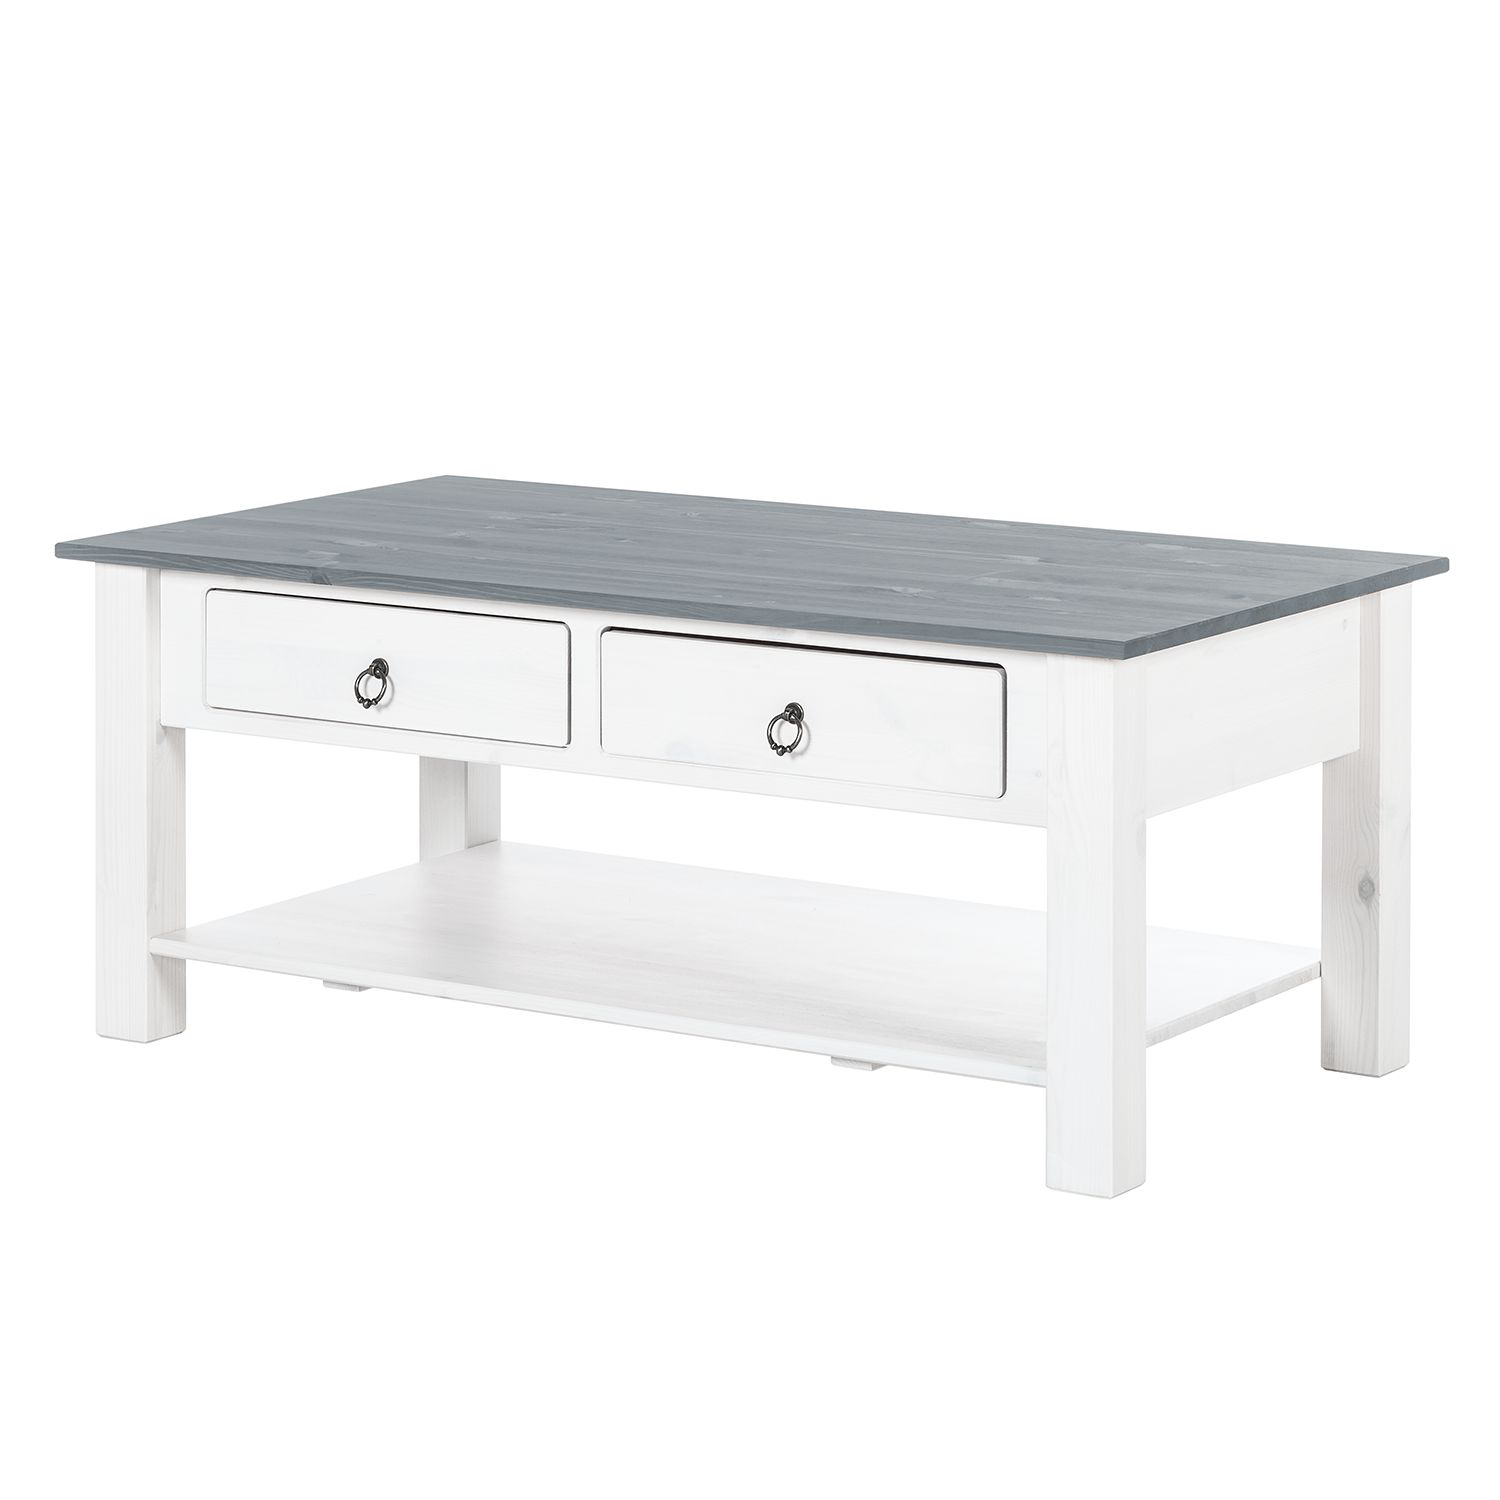 Table d'appoint Valmer II - Pin massif Gris, Maison Belfort